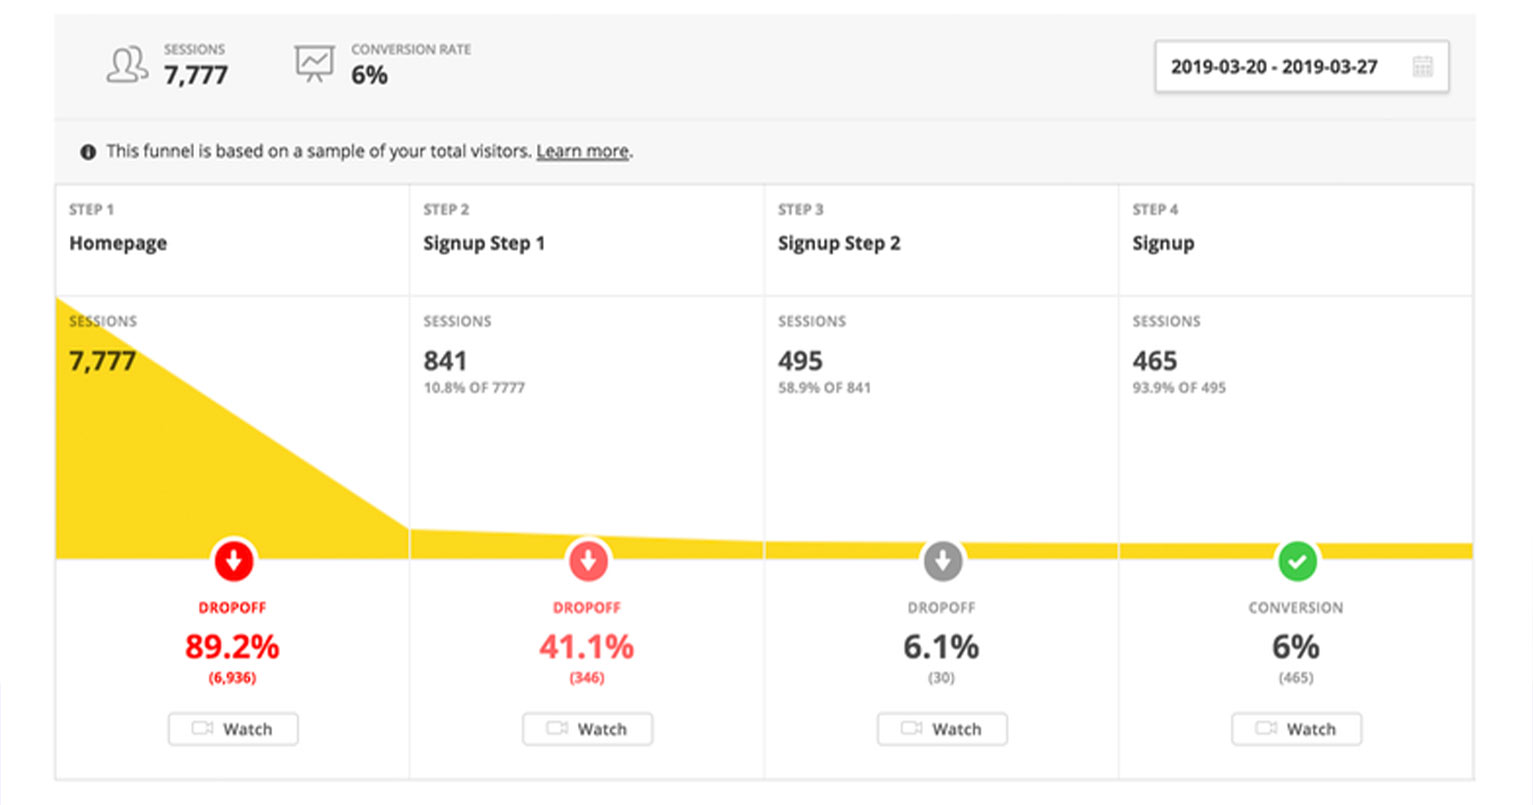 With Hotjar, you can create step-by-step processes in a sales funnel, then evaluate bounce rates at each step.